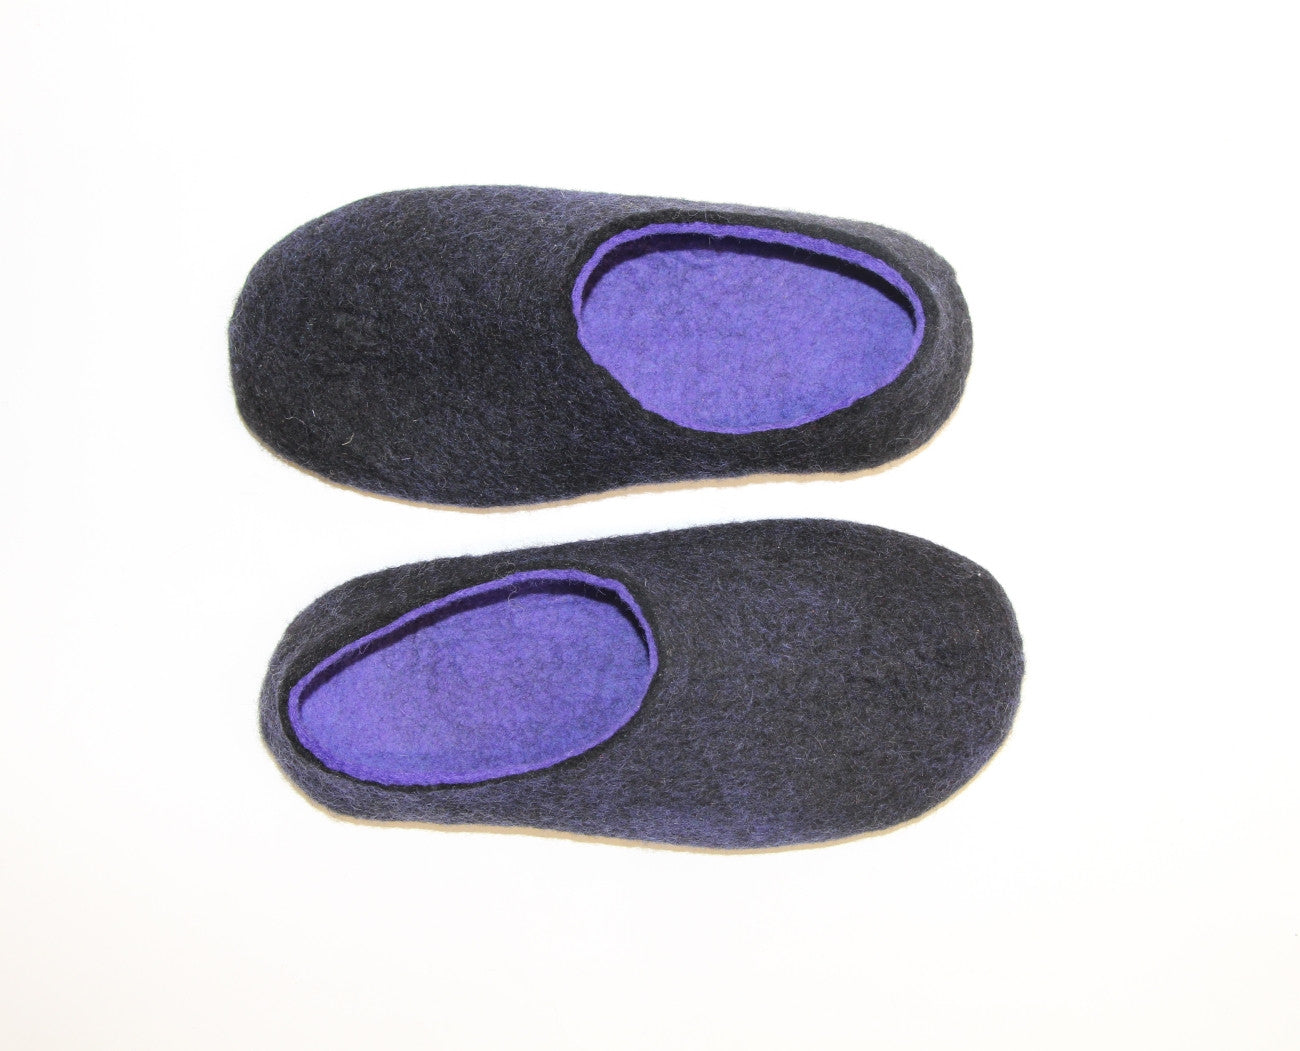 Womens Two Tone Felted Slippers Black Indigo Contrast Sole - Wool Walker  - 7